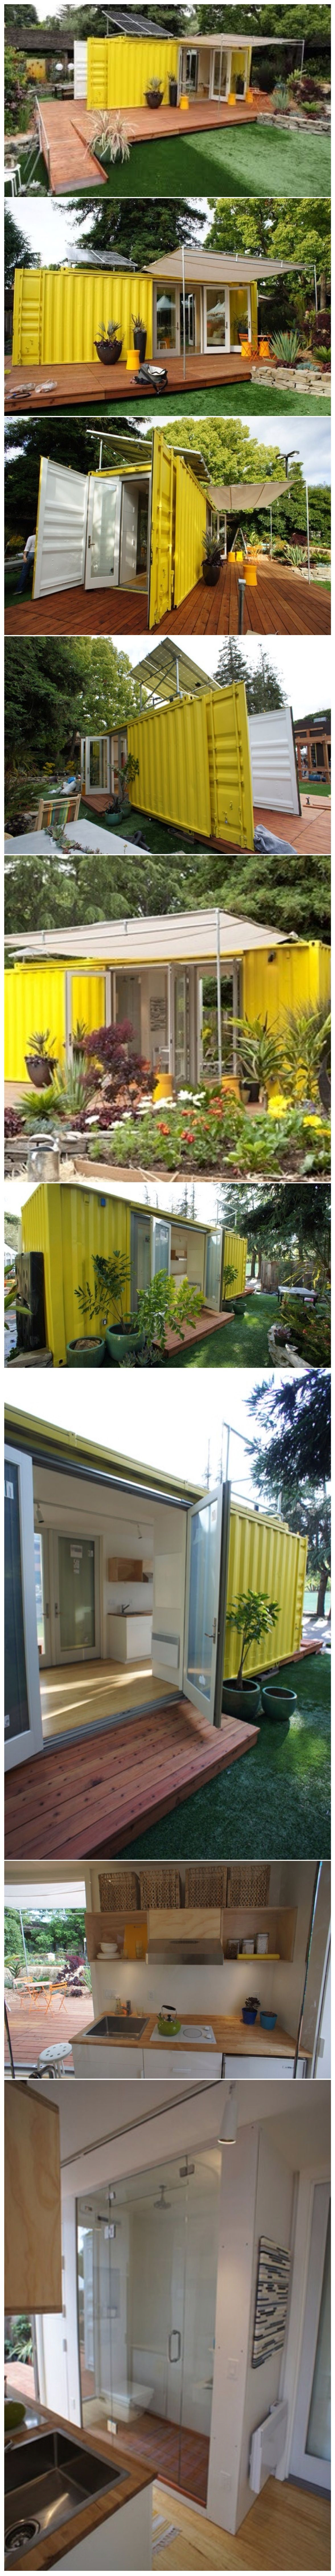 Via Www Cargotecture Com This Little Shipping Container House Called The Nomad Was Designed Container Hausplane Container Home Designs Frachtcontainer Hauser